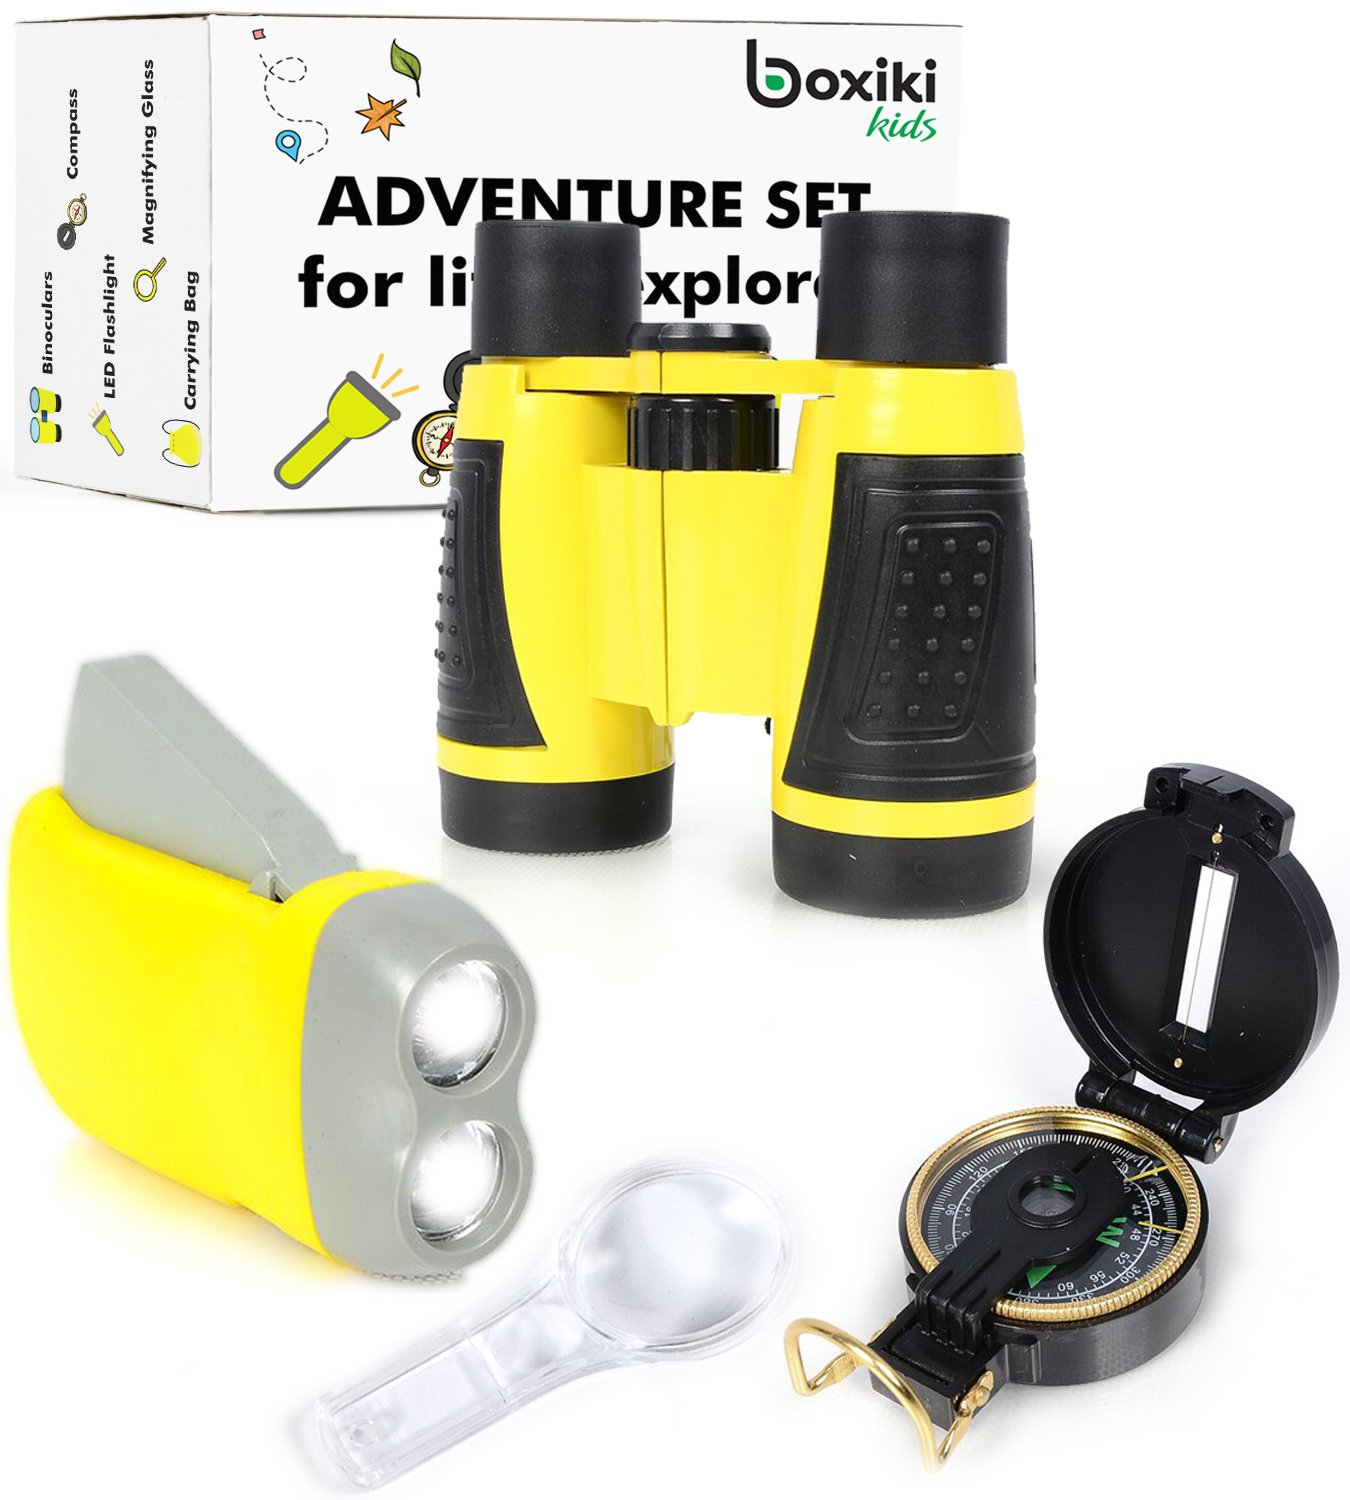 Nature Exploration Adventure Toys | 5 PC Outdoor Adventure Set | Compass, Magnifying Glass, Flashlight, Backpack /& Binoculars For Kids | Educational Outdoor Toys for Boys /& Girls by Boxiki Kids